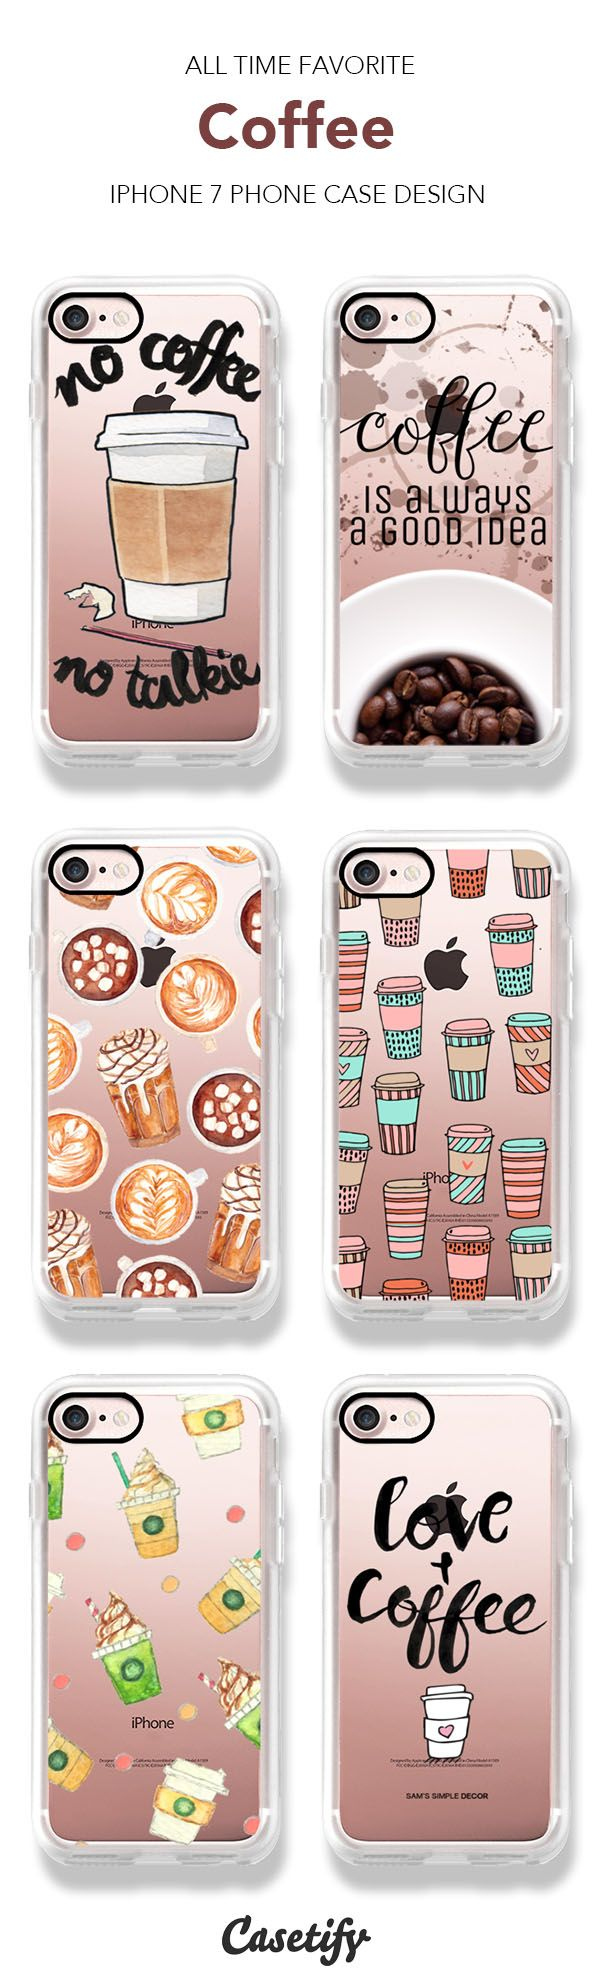 All Time Favorite Coffee iPhone 7 and iPhone 7 Plus case. Shop them all here >   https://www.casetify.com/artworks/RHDACm7wdj